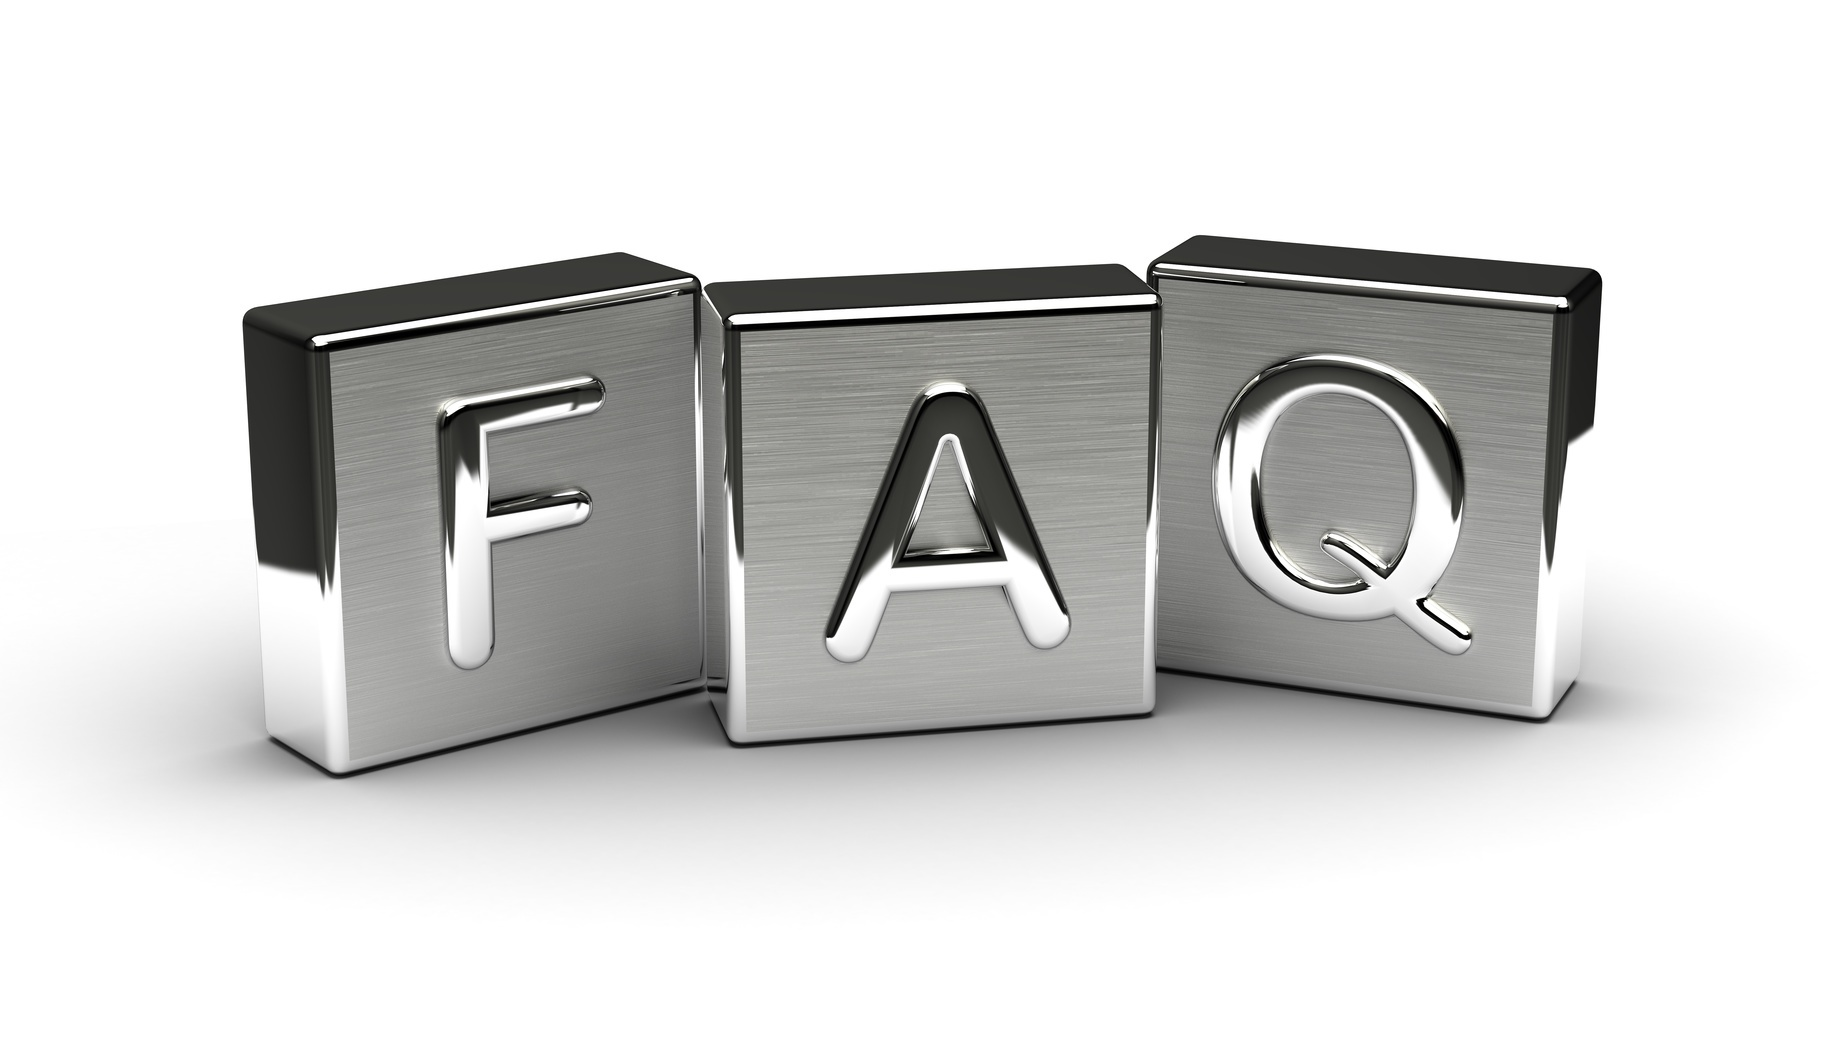 Marlin Steel FAQs: Do I Need a Special Finish for My Stainless Steel?